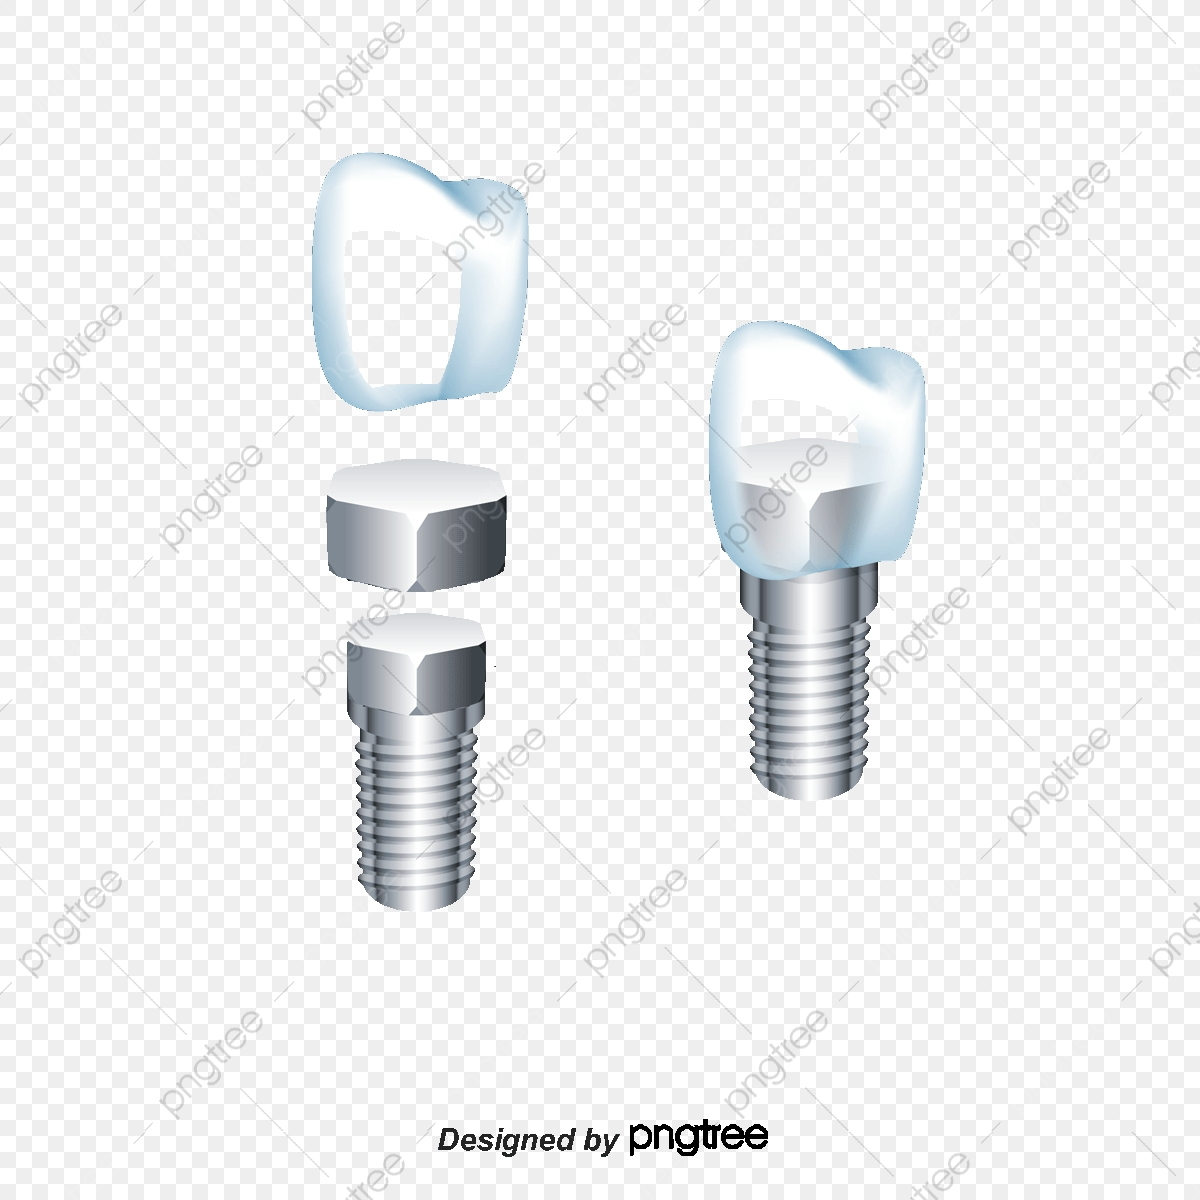 Implant Fillings, Crop, Tooth, Fill A Tooth PNG Transparent Clipart.